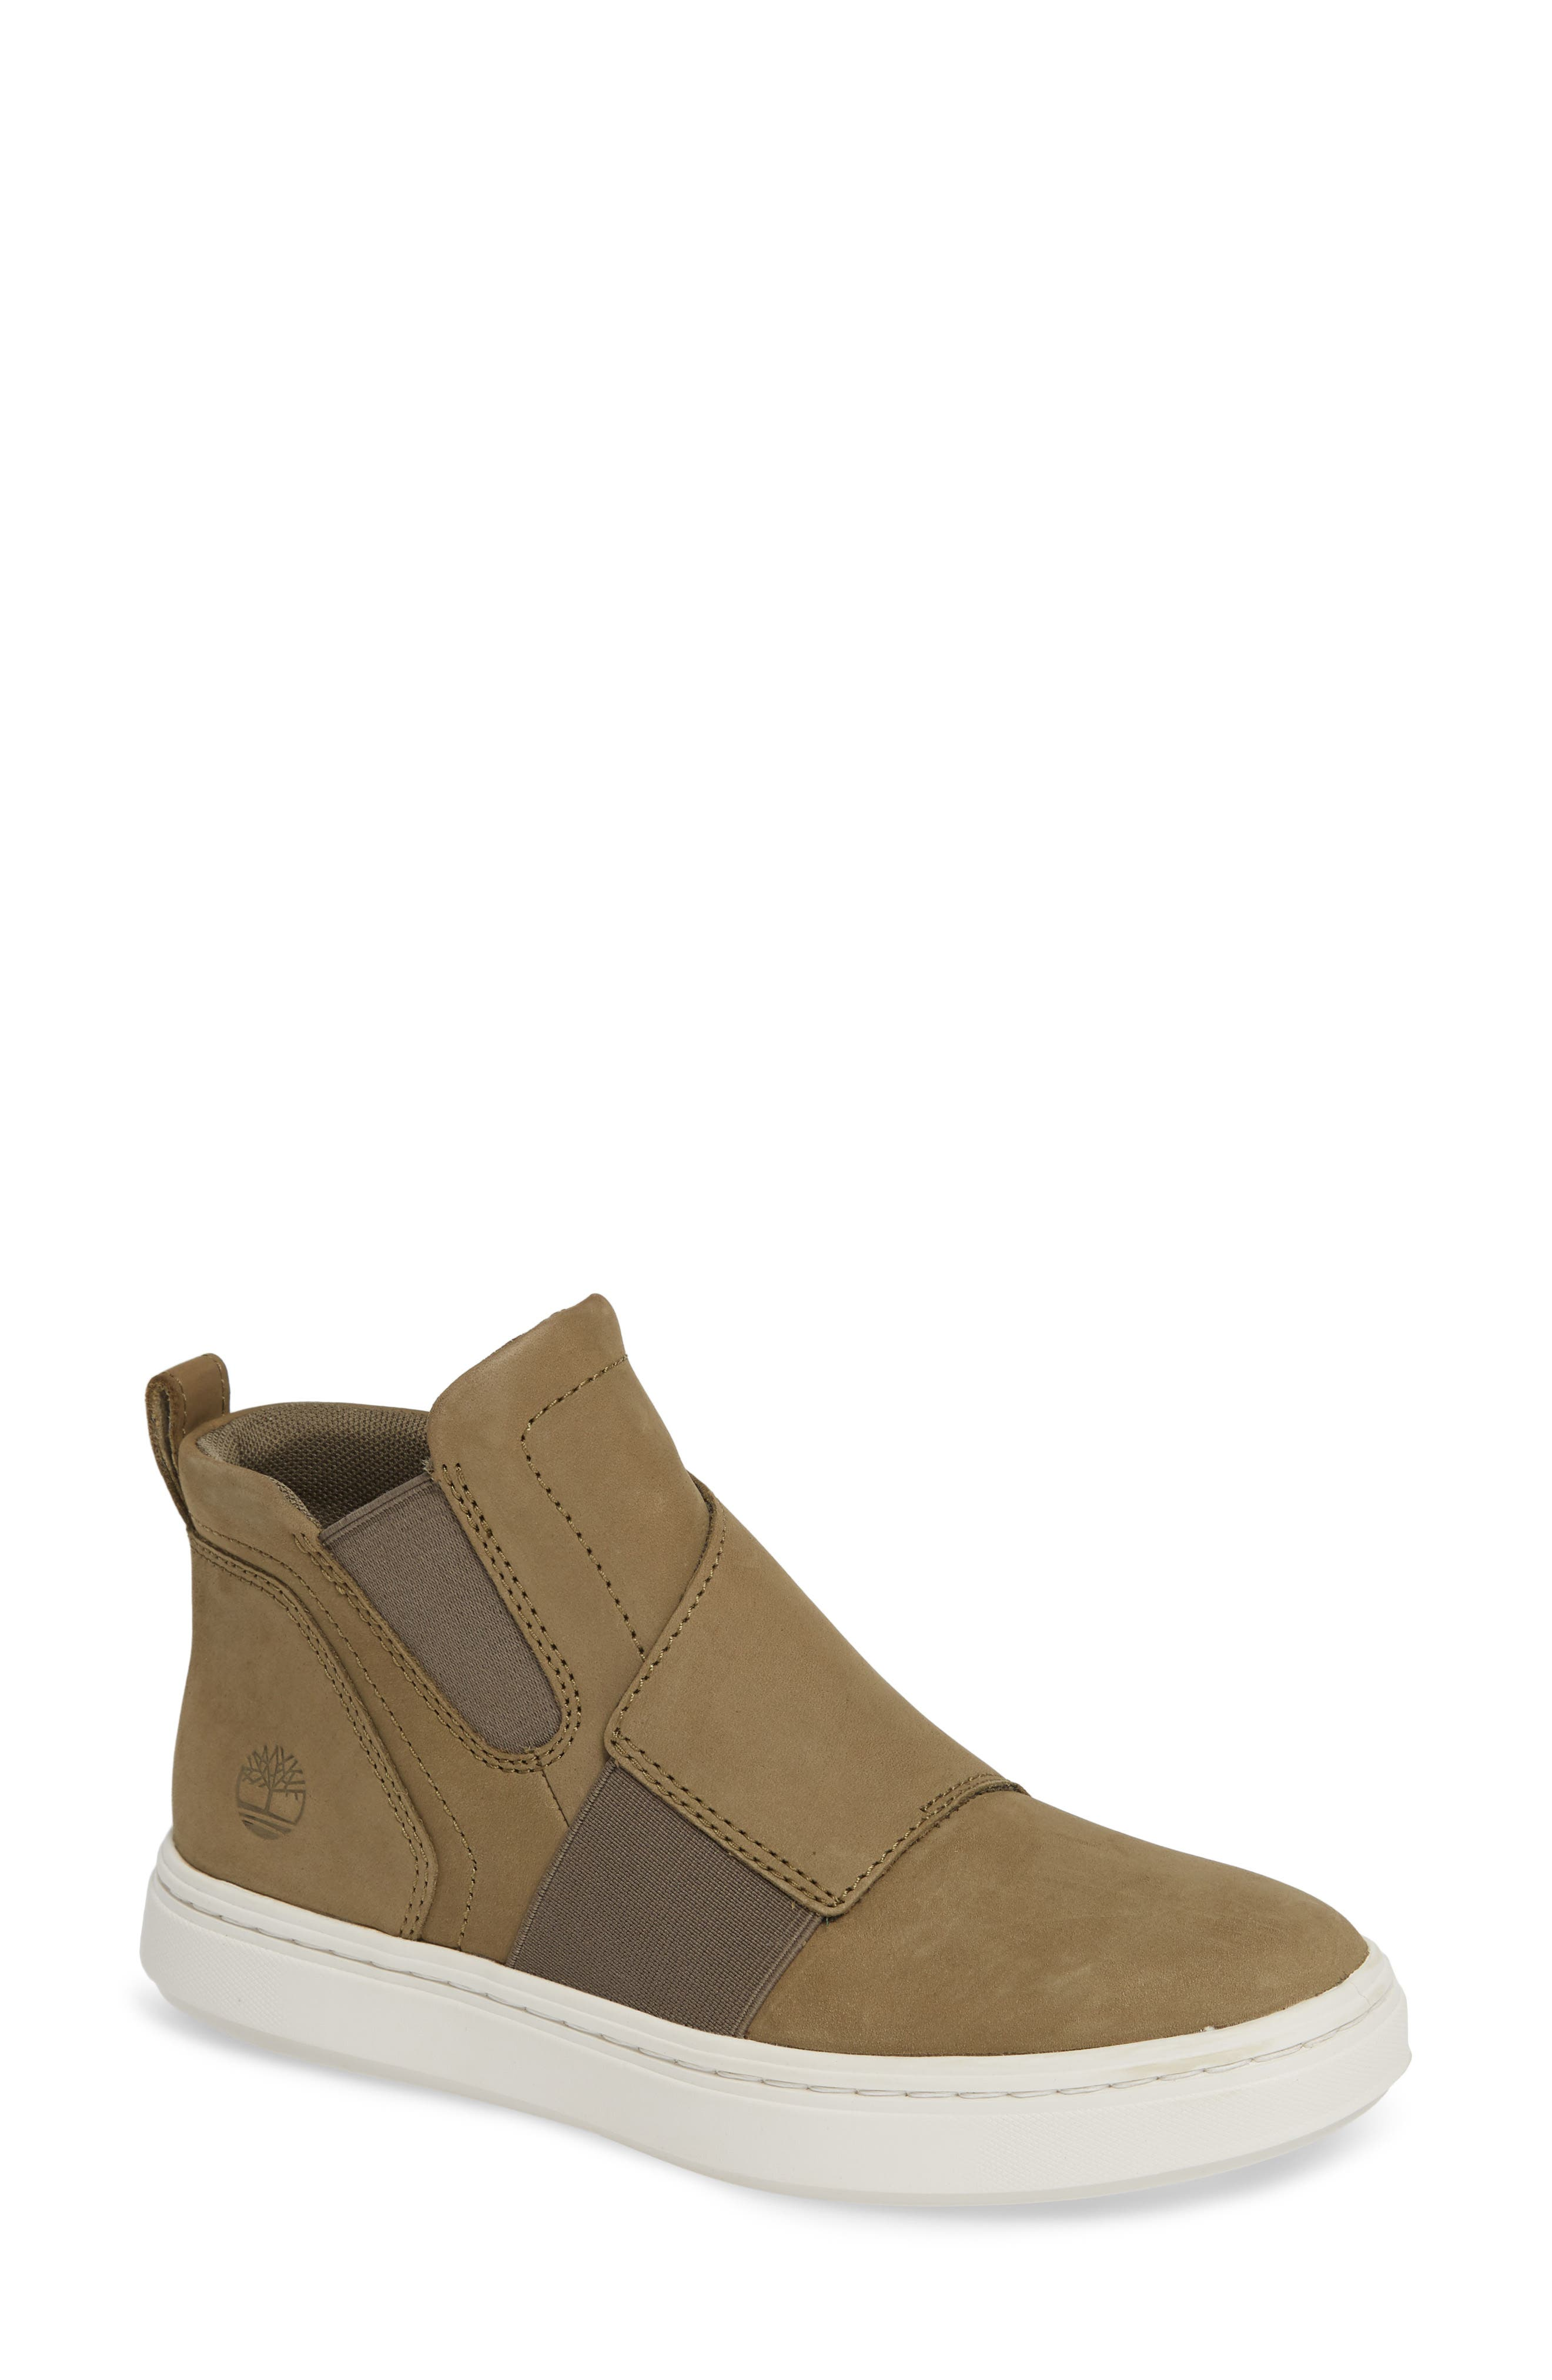 Londyn Chelsea Sneaker Boot,                             Main thumbnail 1, color,                             330